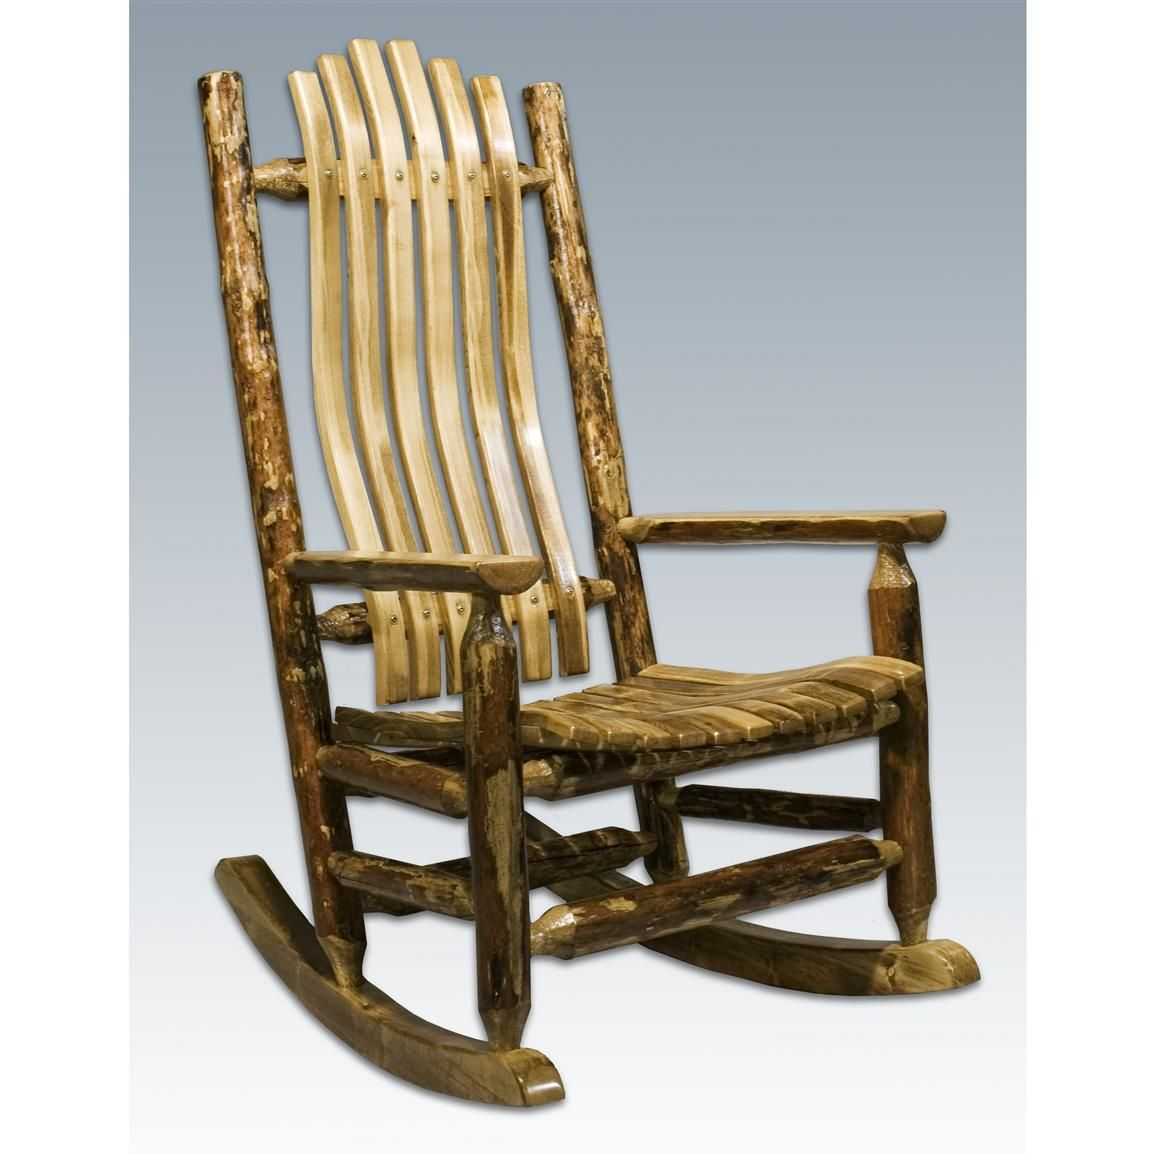 Looking For Rocking Chairs Rustic Log Rocking Chair Tyres2c